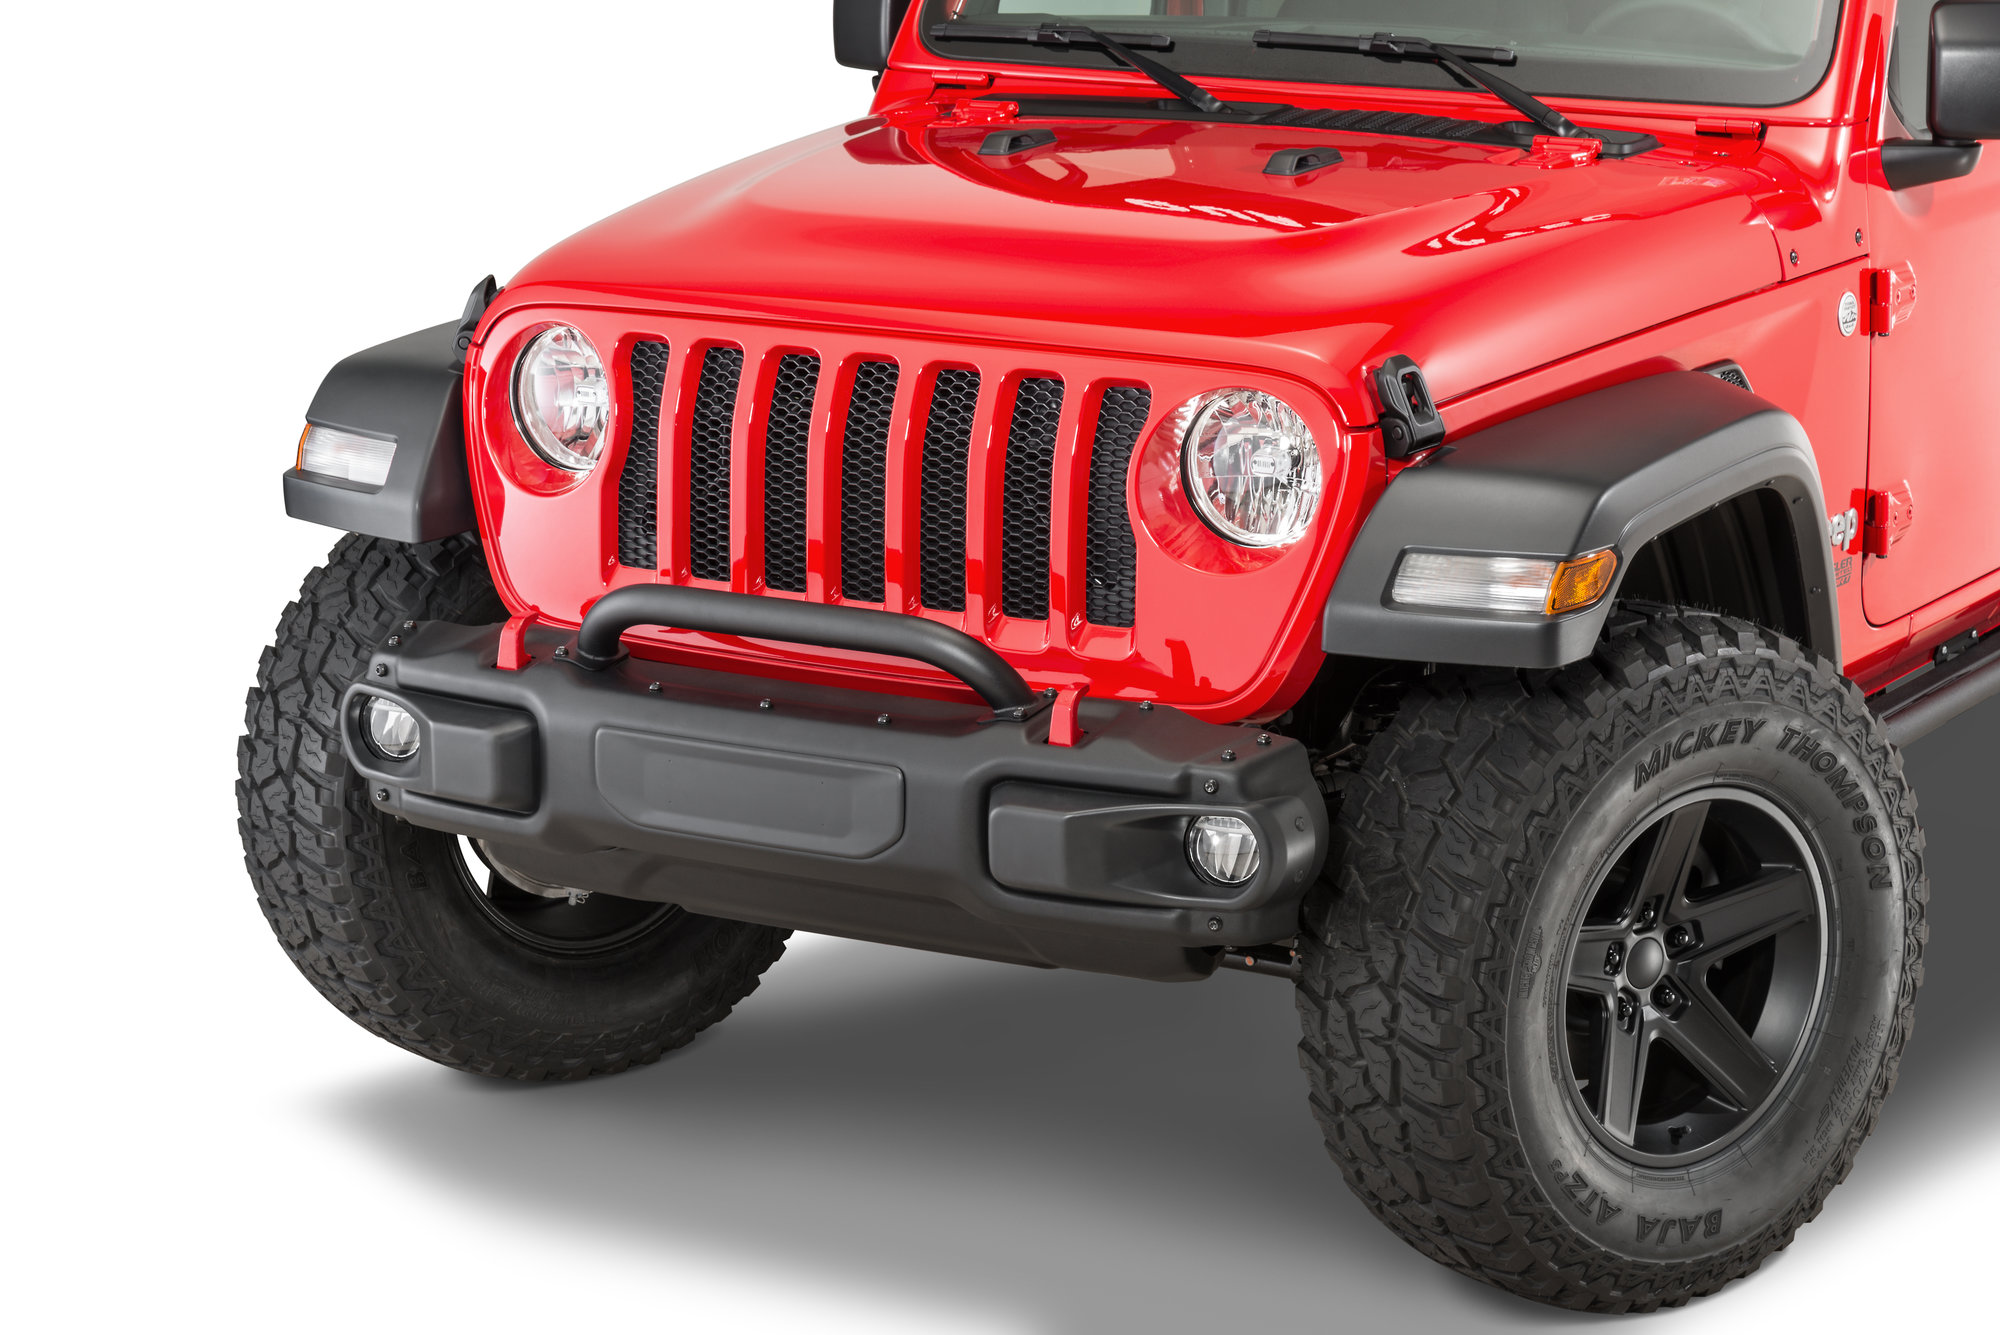 jeep jl bumper wrangler guard rubicon mopar front winch steel grille stubby light gladiator plate led offroad factory grill skid